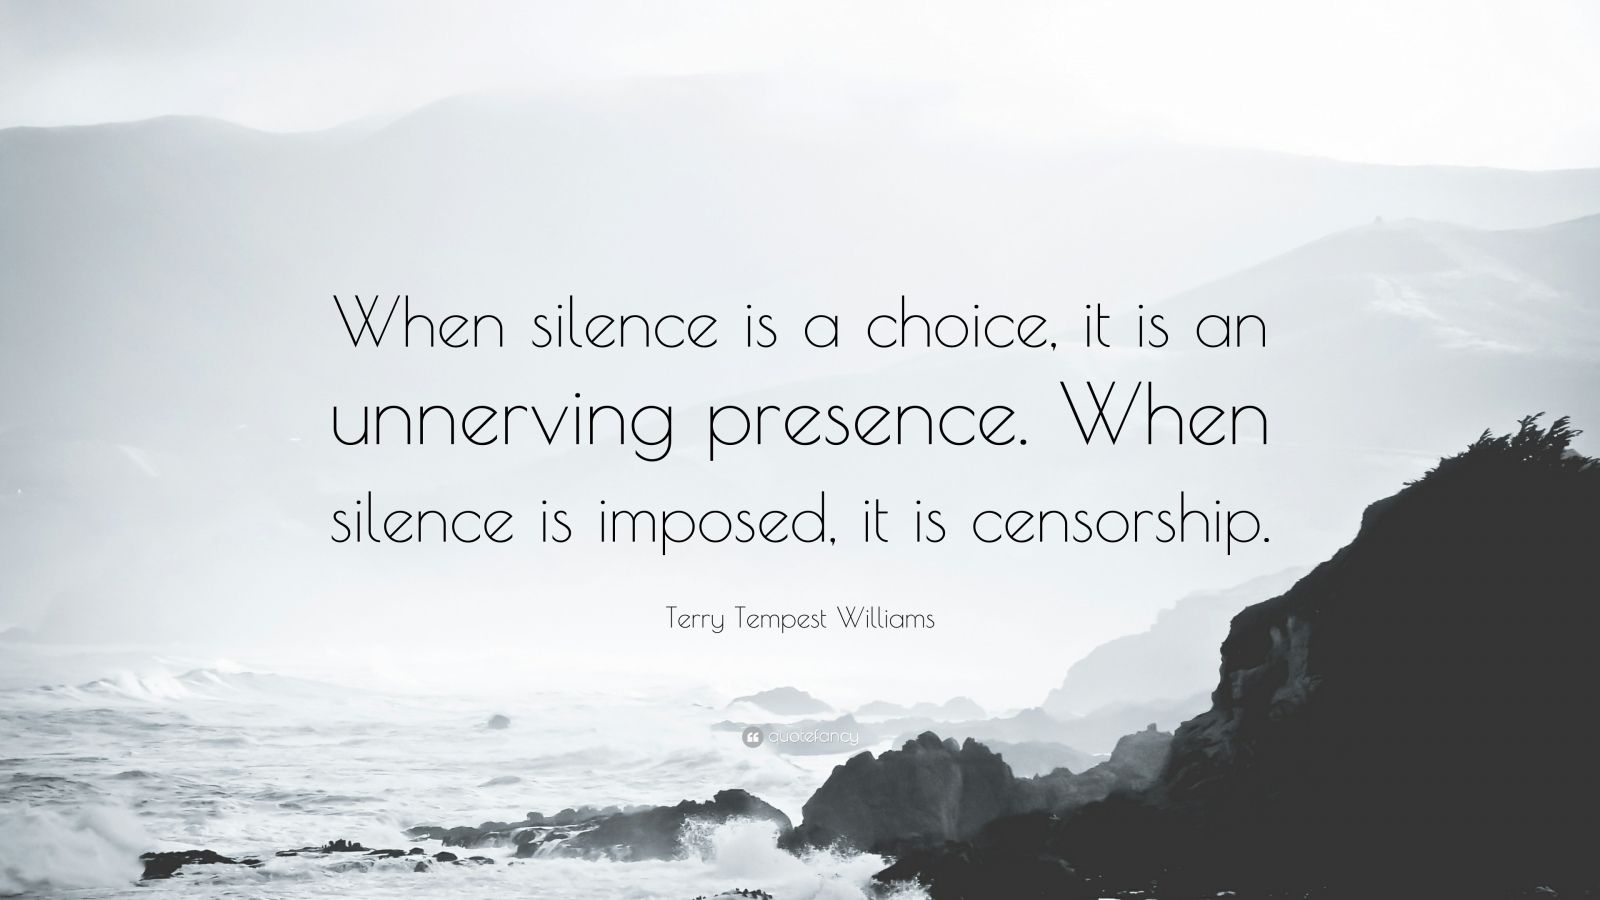 Terry Tempest Williams Quote When Silence Is A Choice It Is An Unnerving Presence When Silence Is Imposed It Is Censorship 7 Wallpapers Quotefancy